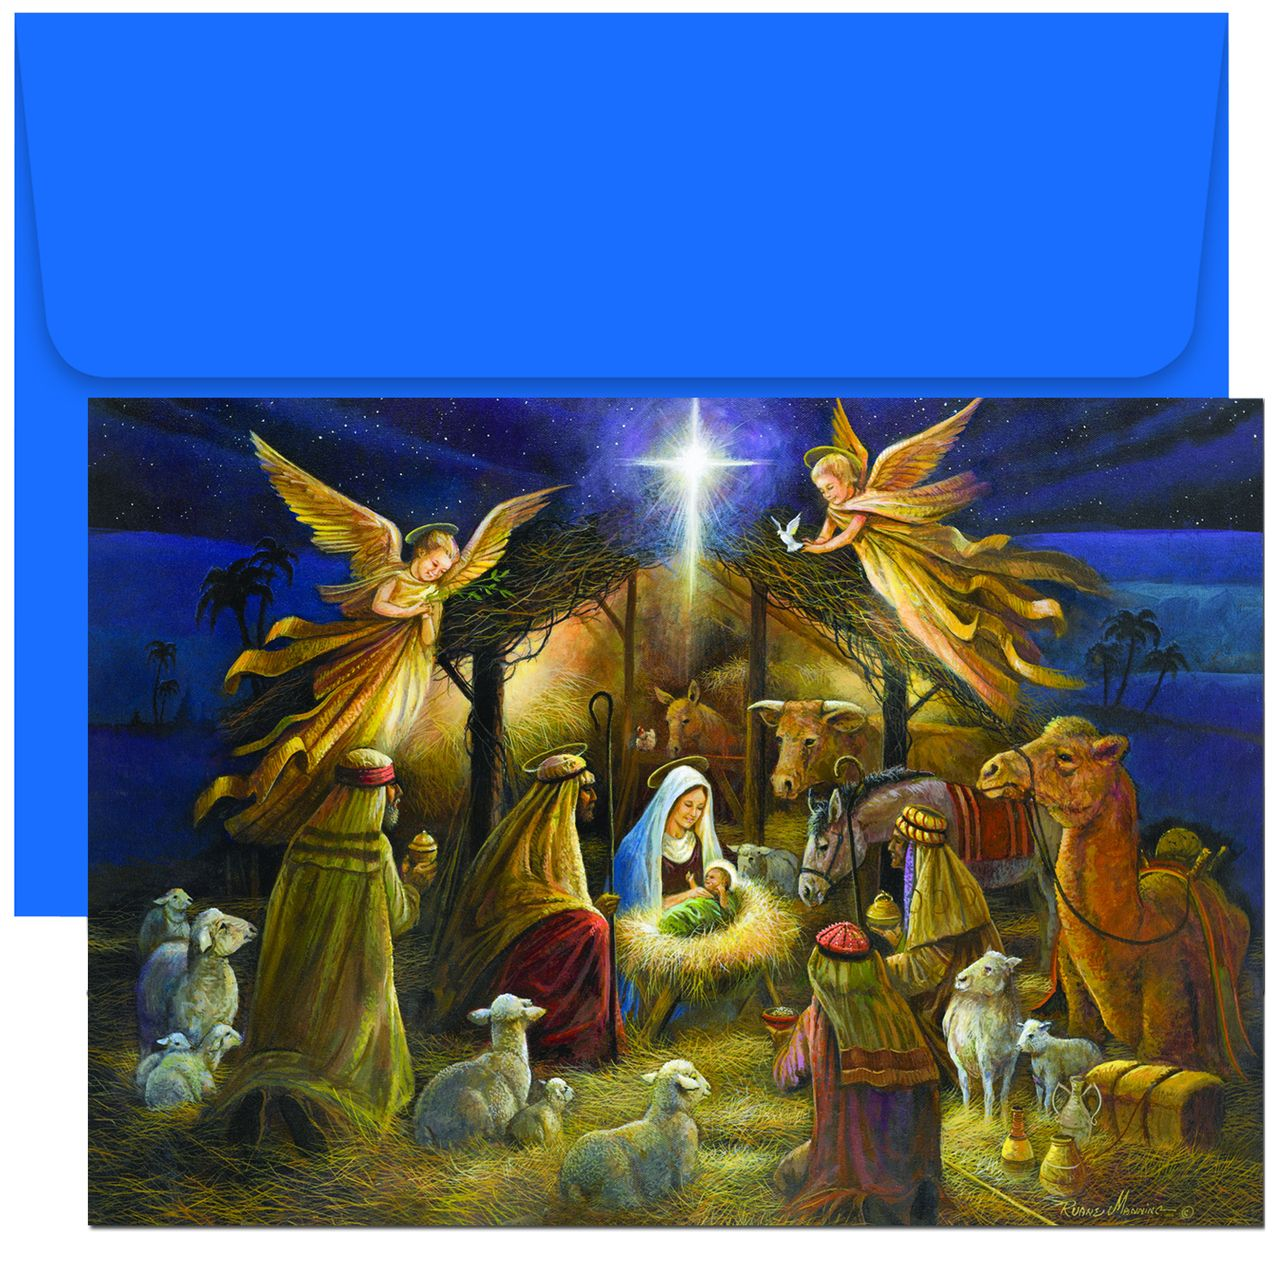 A Holy Scene Religious Christmas Card, $11.20 (http://www.mycards4less.com/religious-christmas-cards/nativity-and-creche/a-holy-scene-religious-christmas-cards)